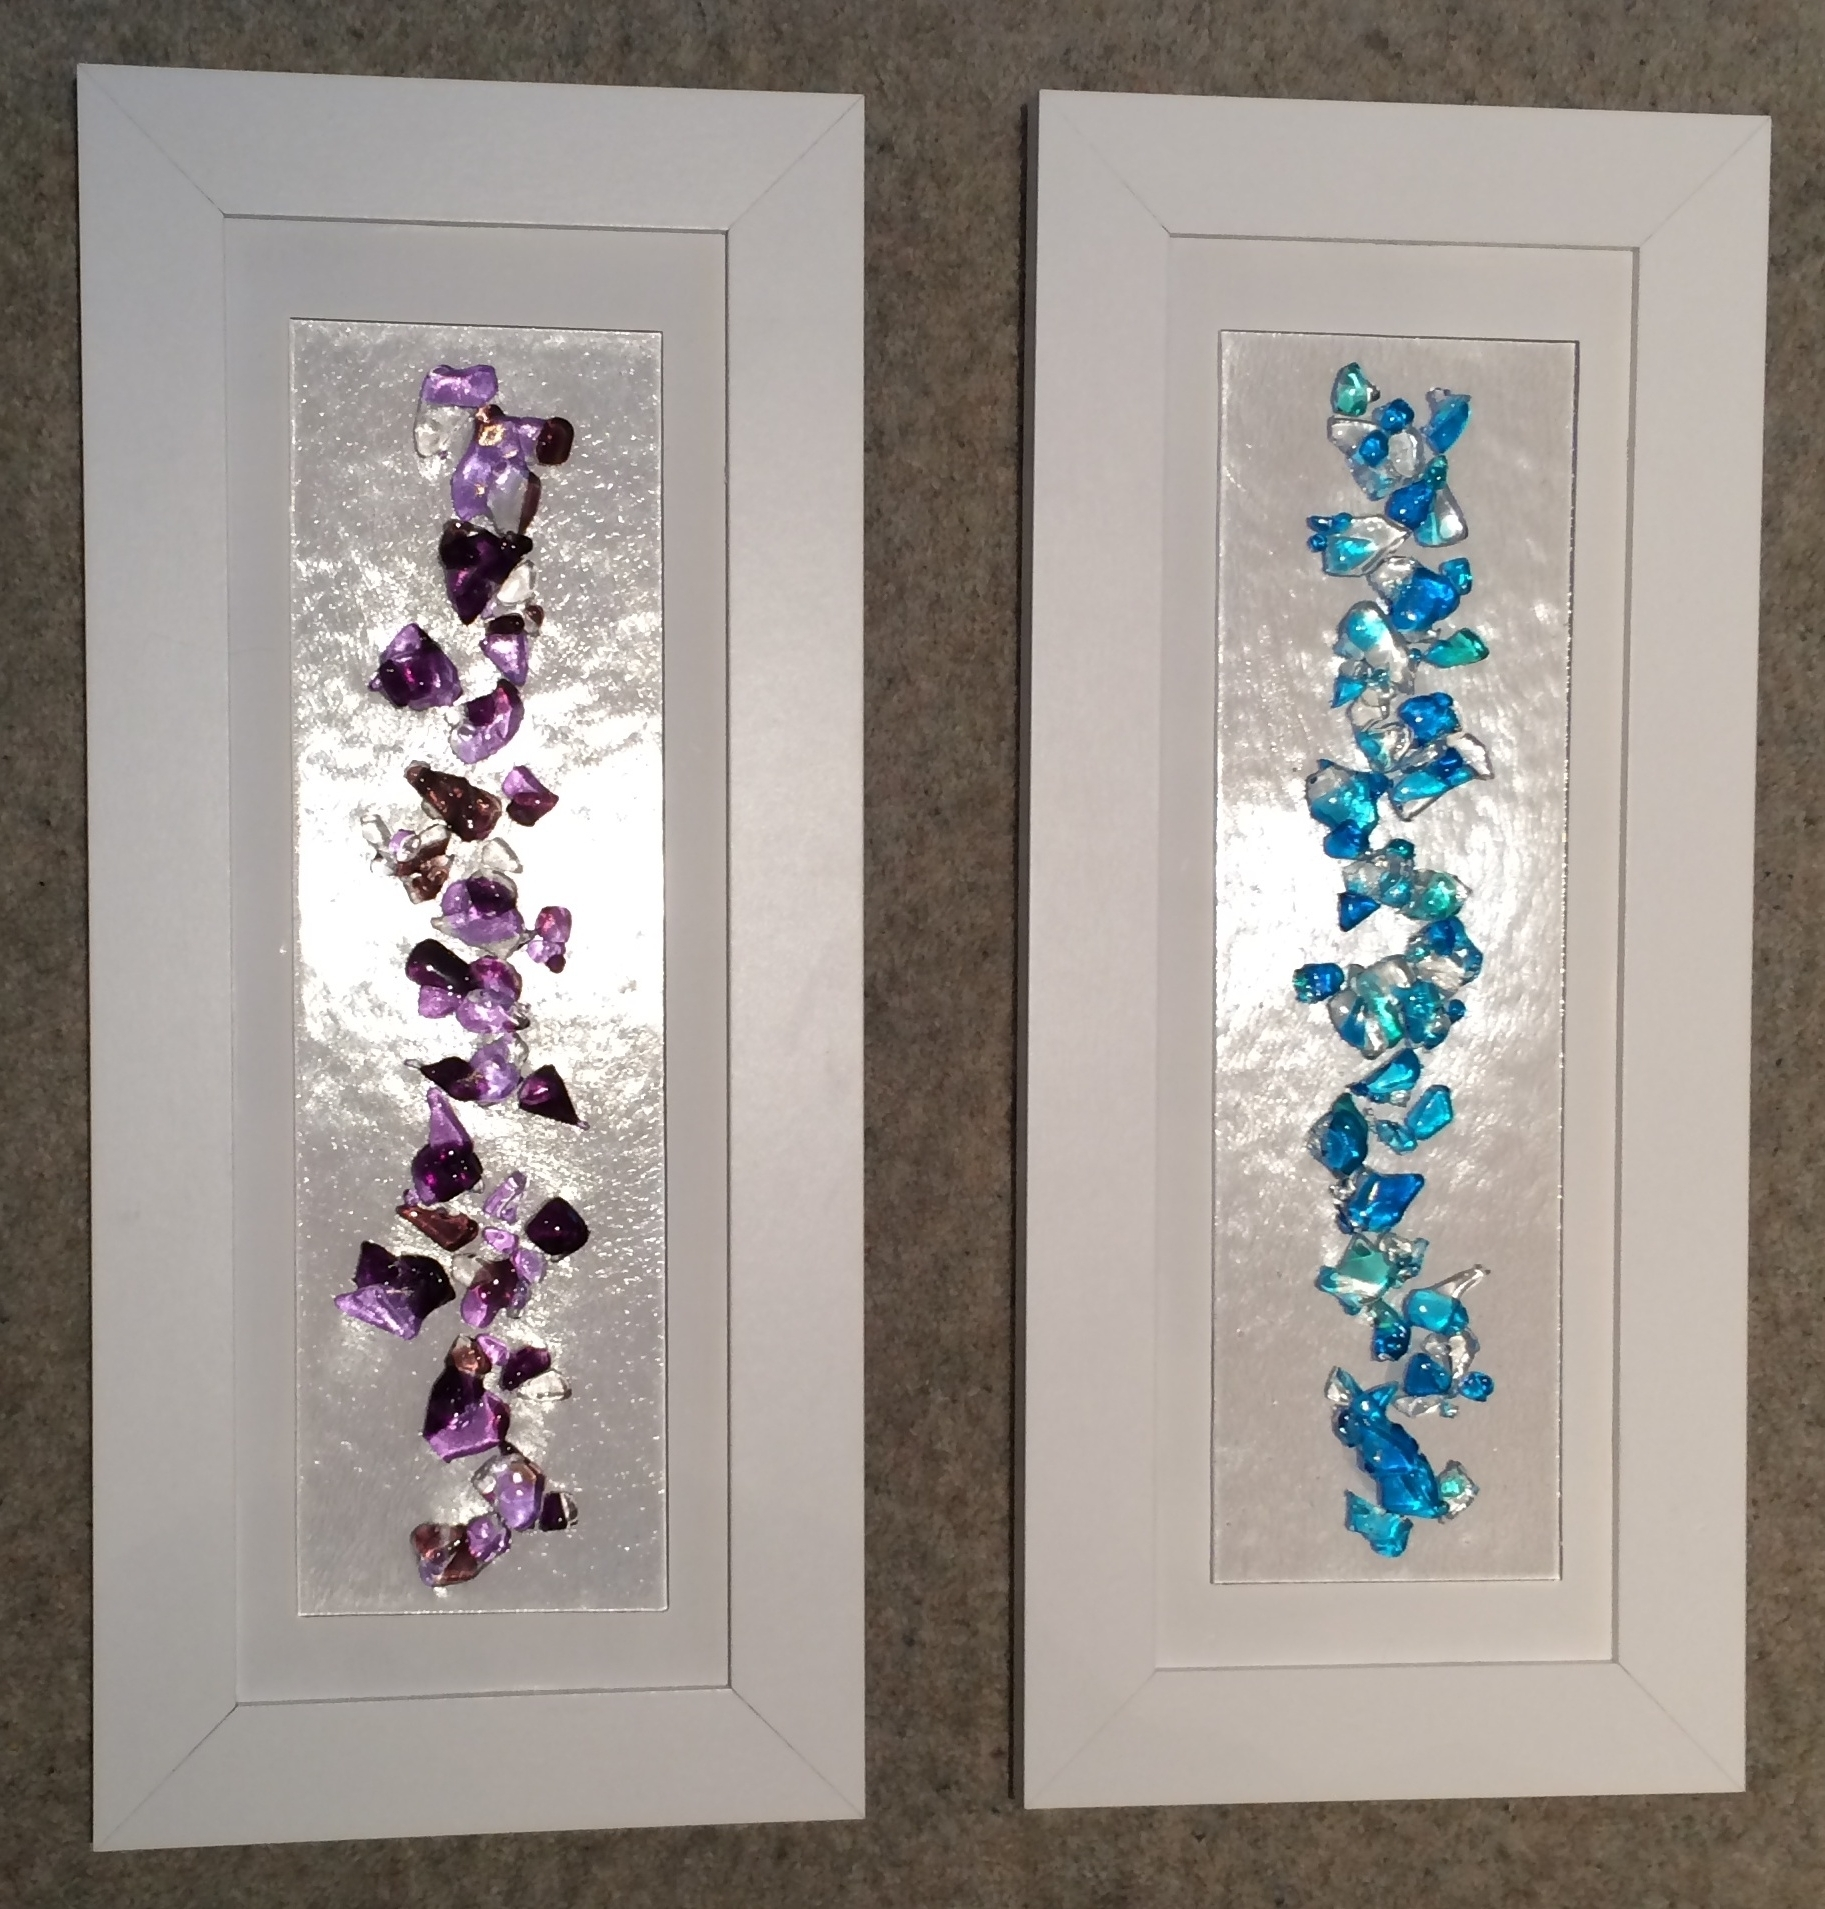 I Love With Regard To Fused Glass Wall Artwork (View 9 of 15)